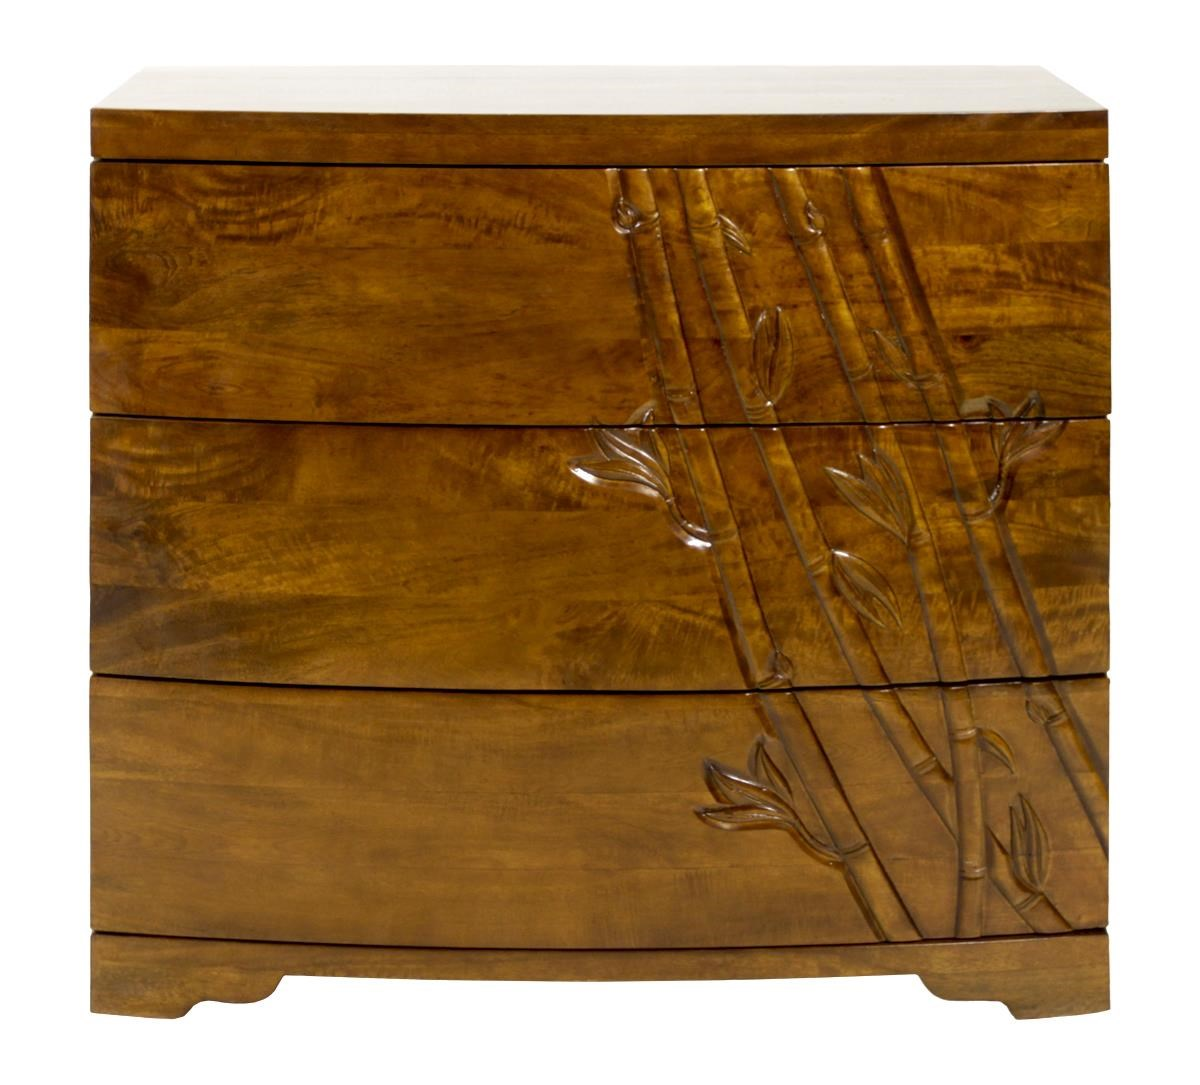 Foliage 3 Drawer Dresser by Jamieson Import Services, Inc. at HomeWorld Furniture